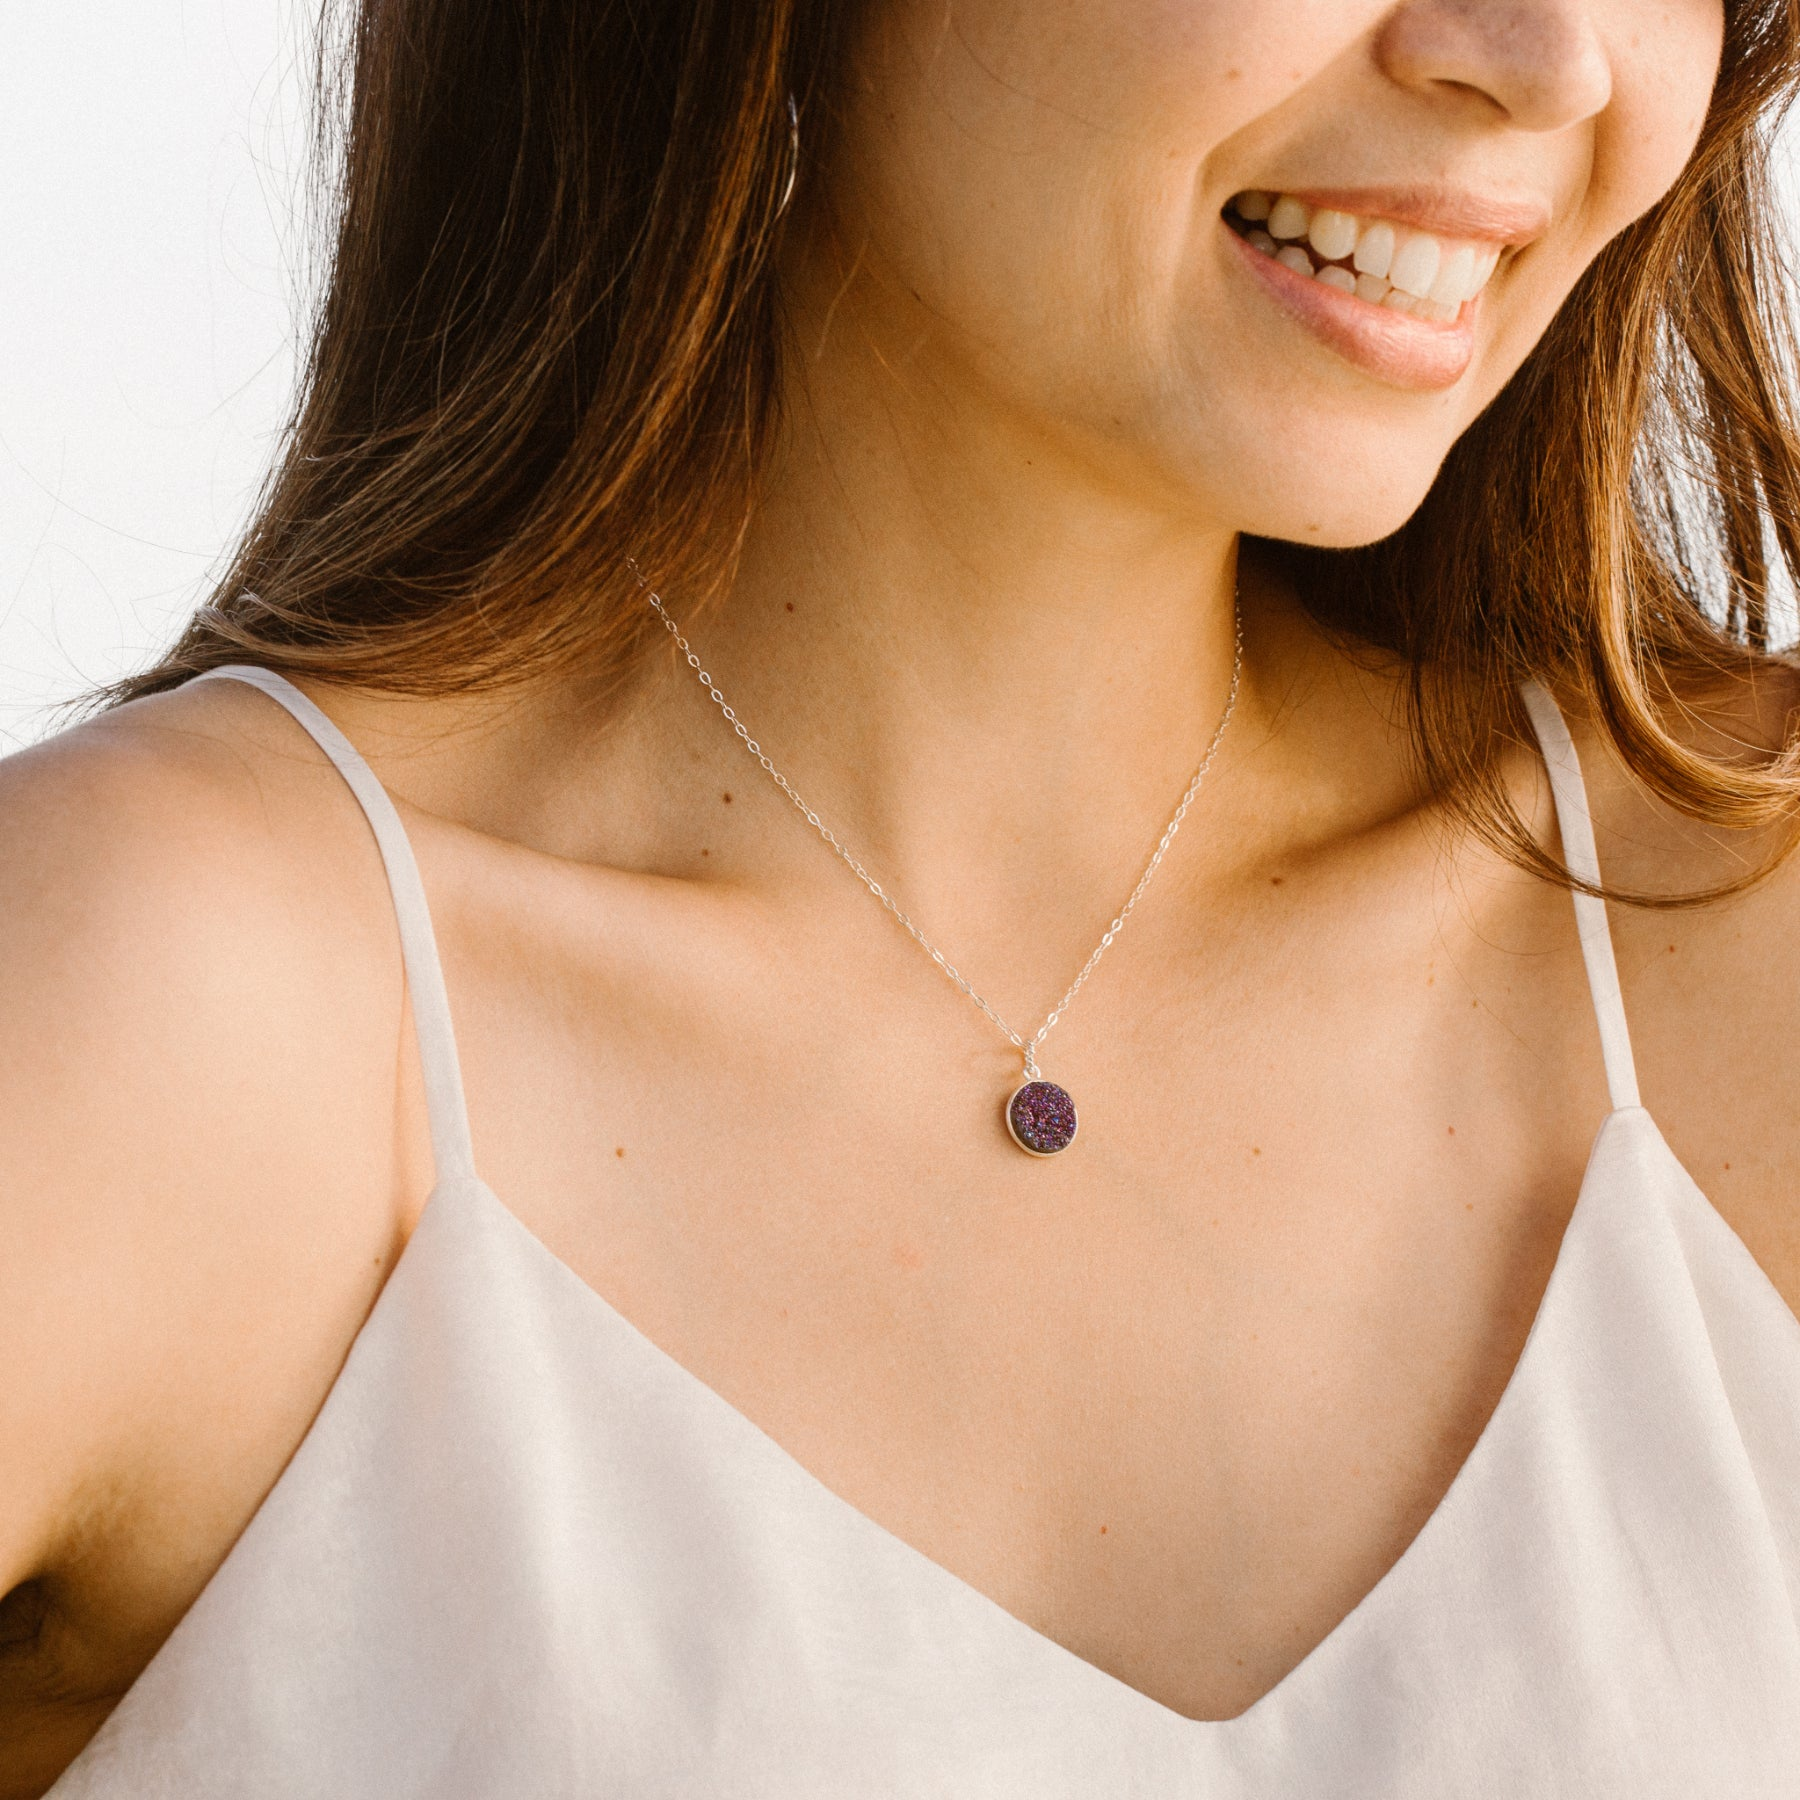 Woman in White Shirt Smiling and Wearing Circular Purple Druzy and Silver Necklace 'I Am Happy' Model Photo by Asha Blooms